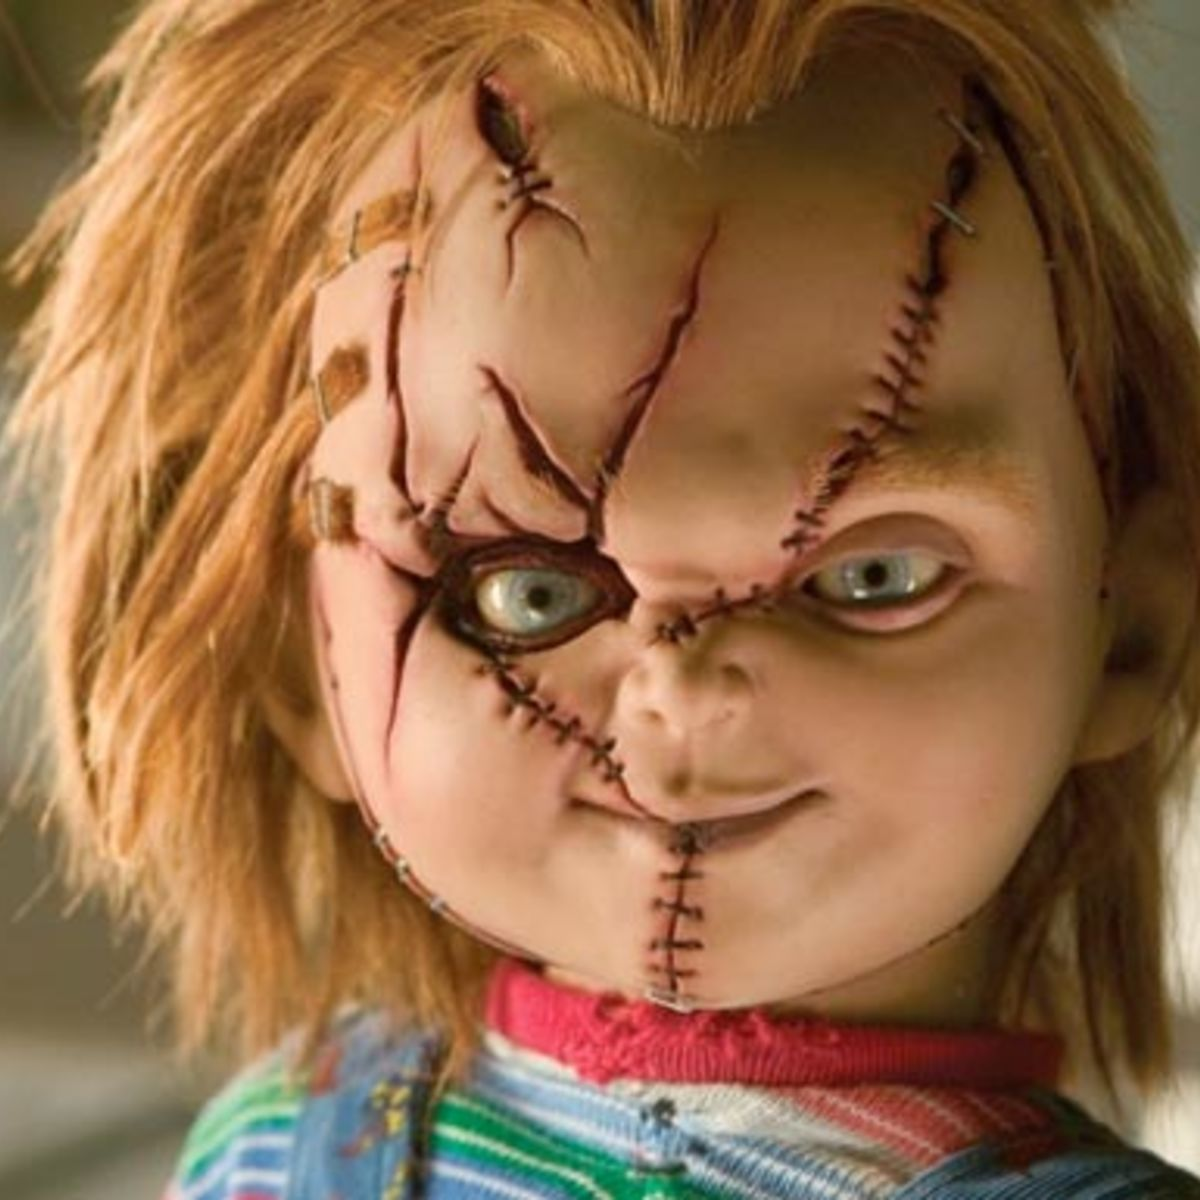 Check out the new Chucky for the new Child's Play